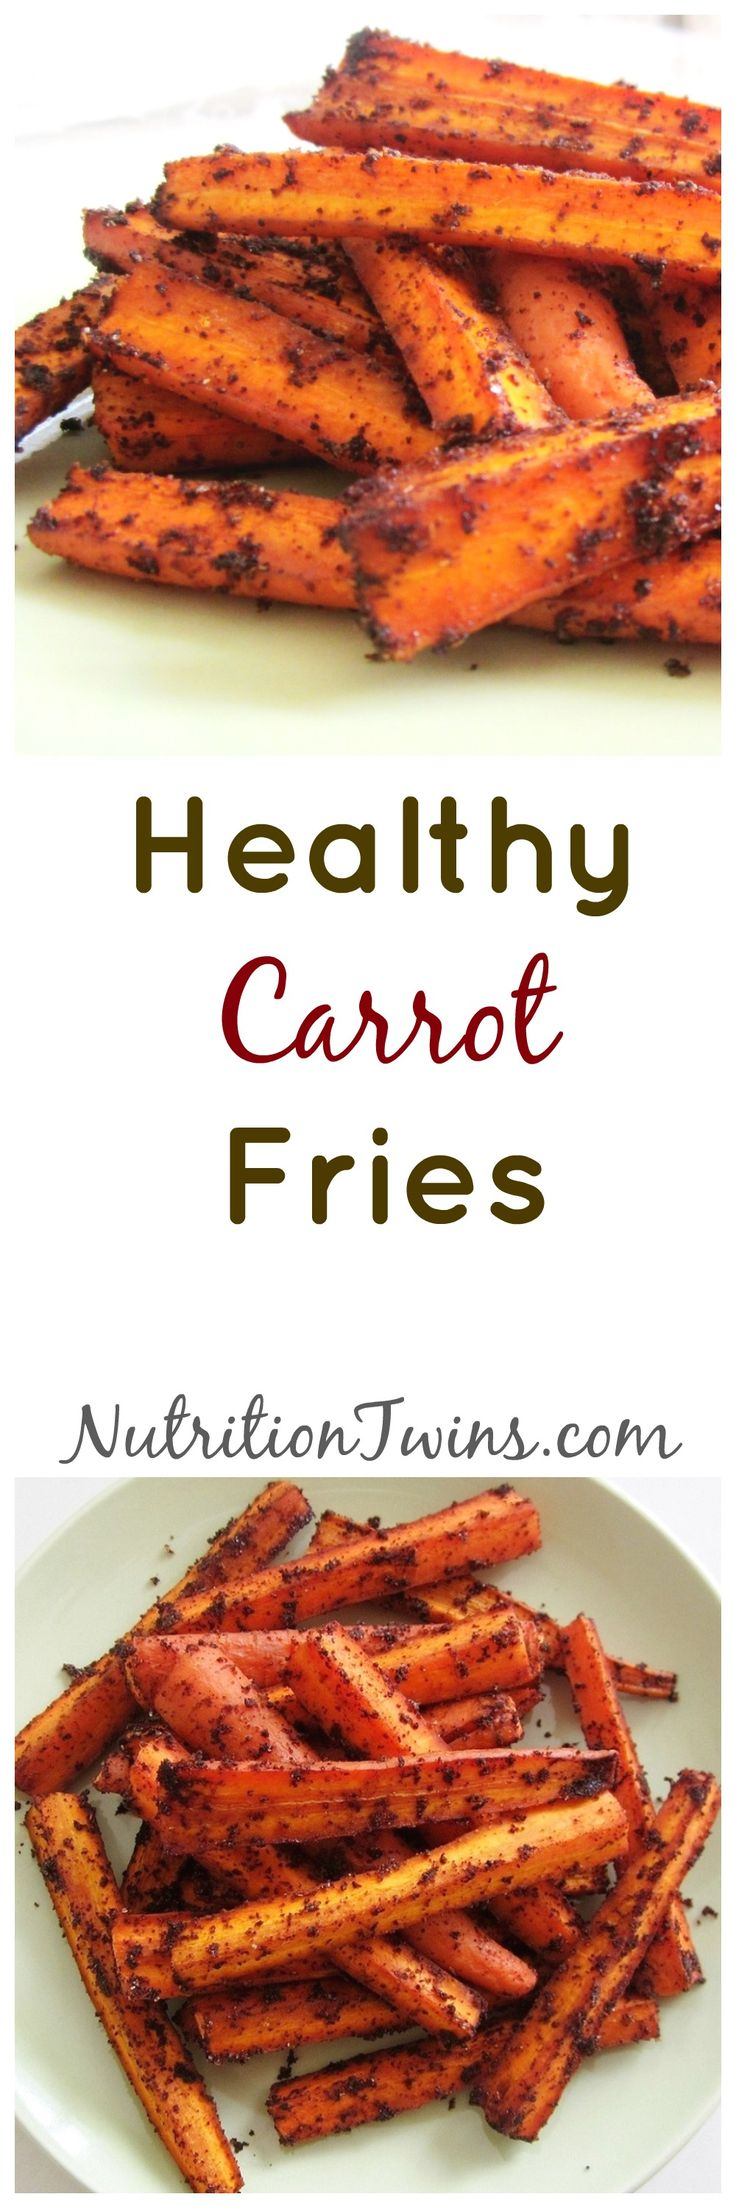 """Carrot """"Fries""""   Only 71 Calories   Crispy, Sweet & Savory Substitute for Greasy Fries  For Nutrition & Fitness Tips & RECIPES please SIGN UP for our FREE NEWSLETTER www.NutritionTwins.com"""